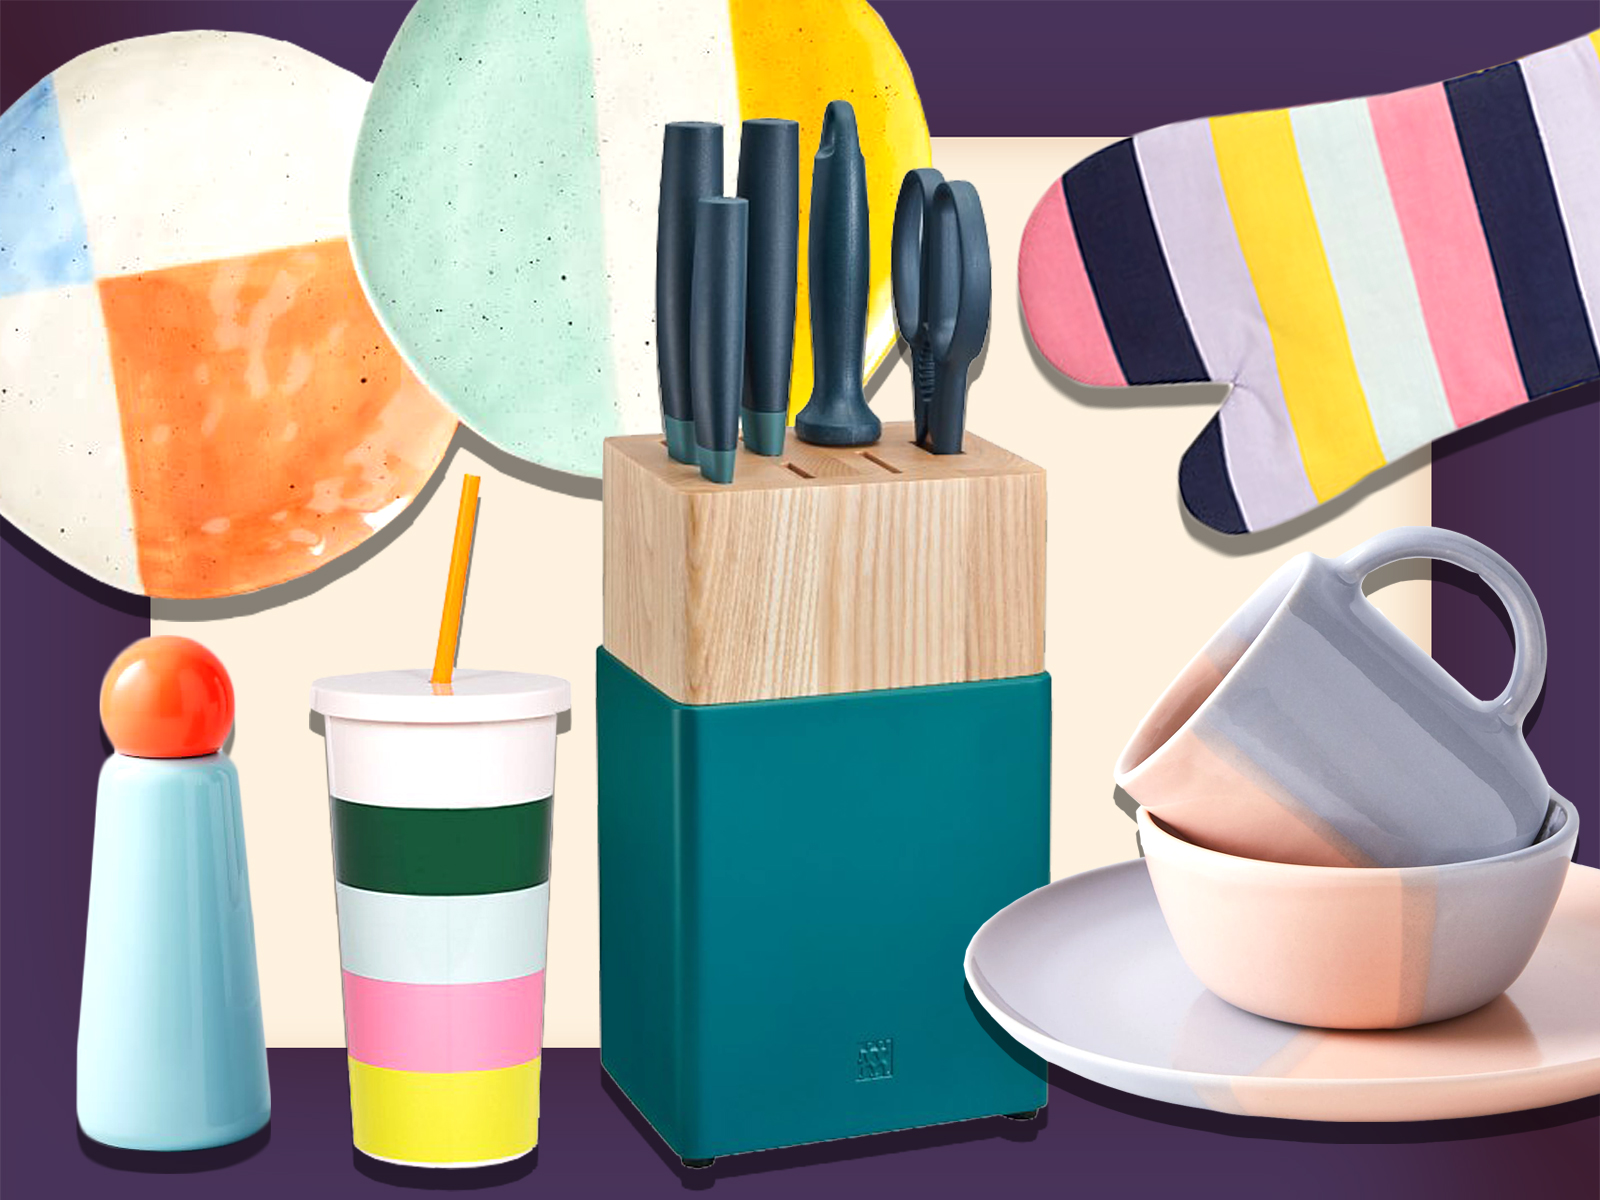 color blocked kitchen items